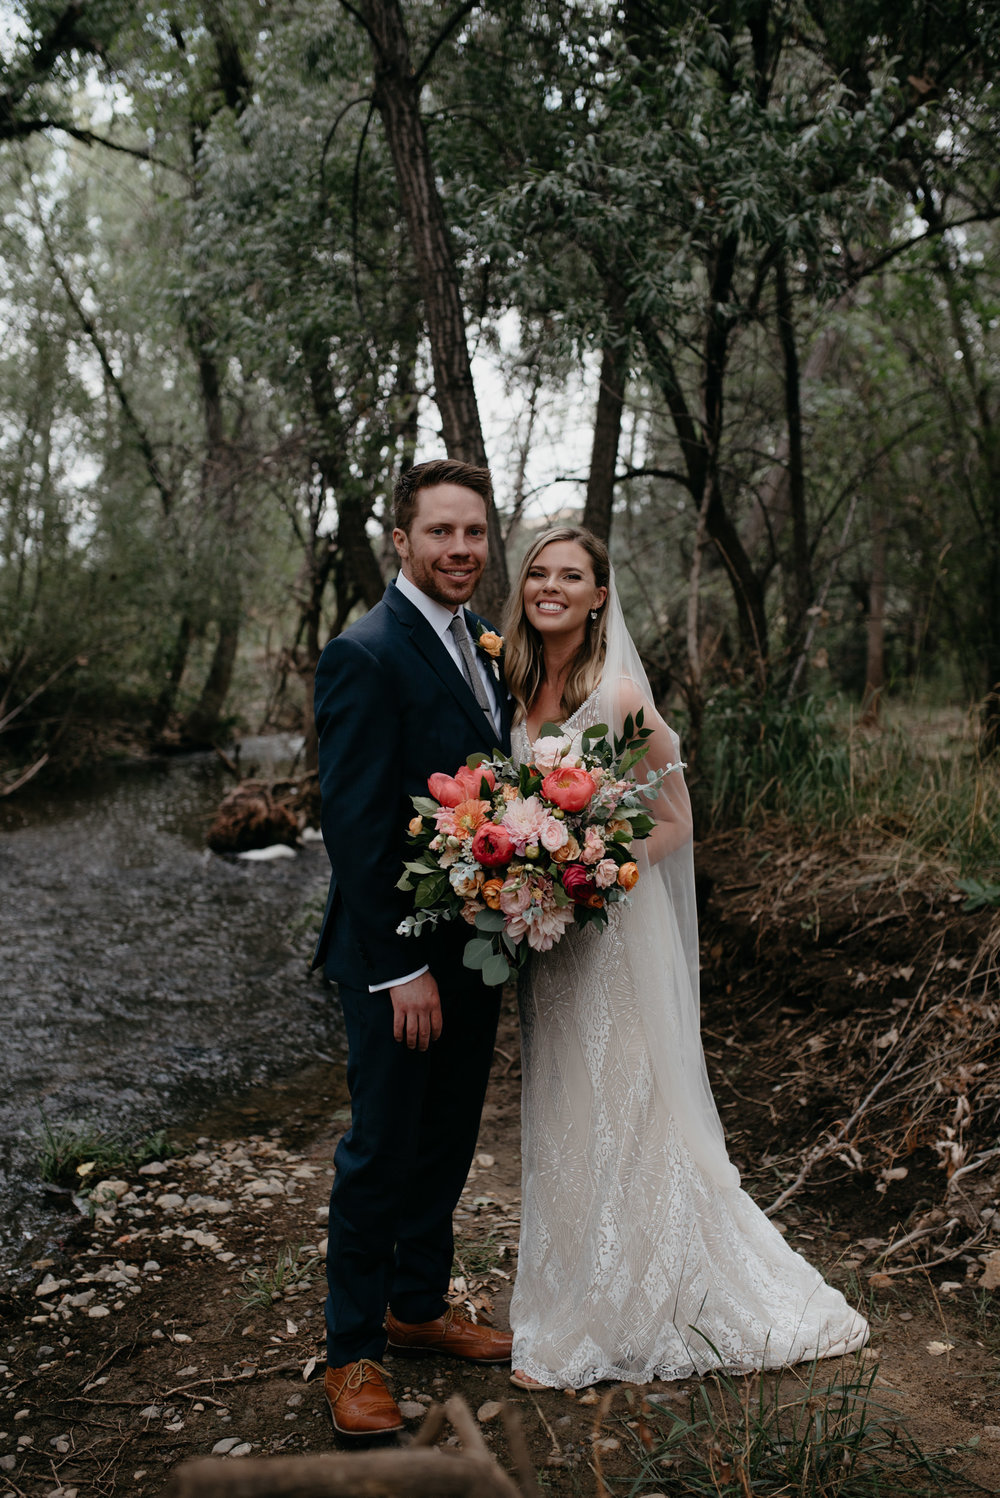 Colorado mountain wedding and elopement photography for adventurous couples.